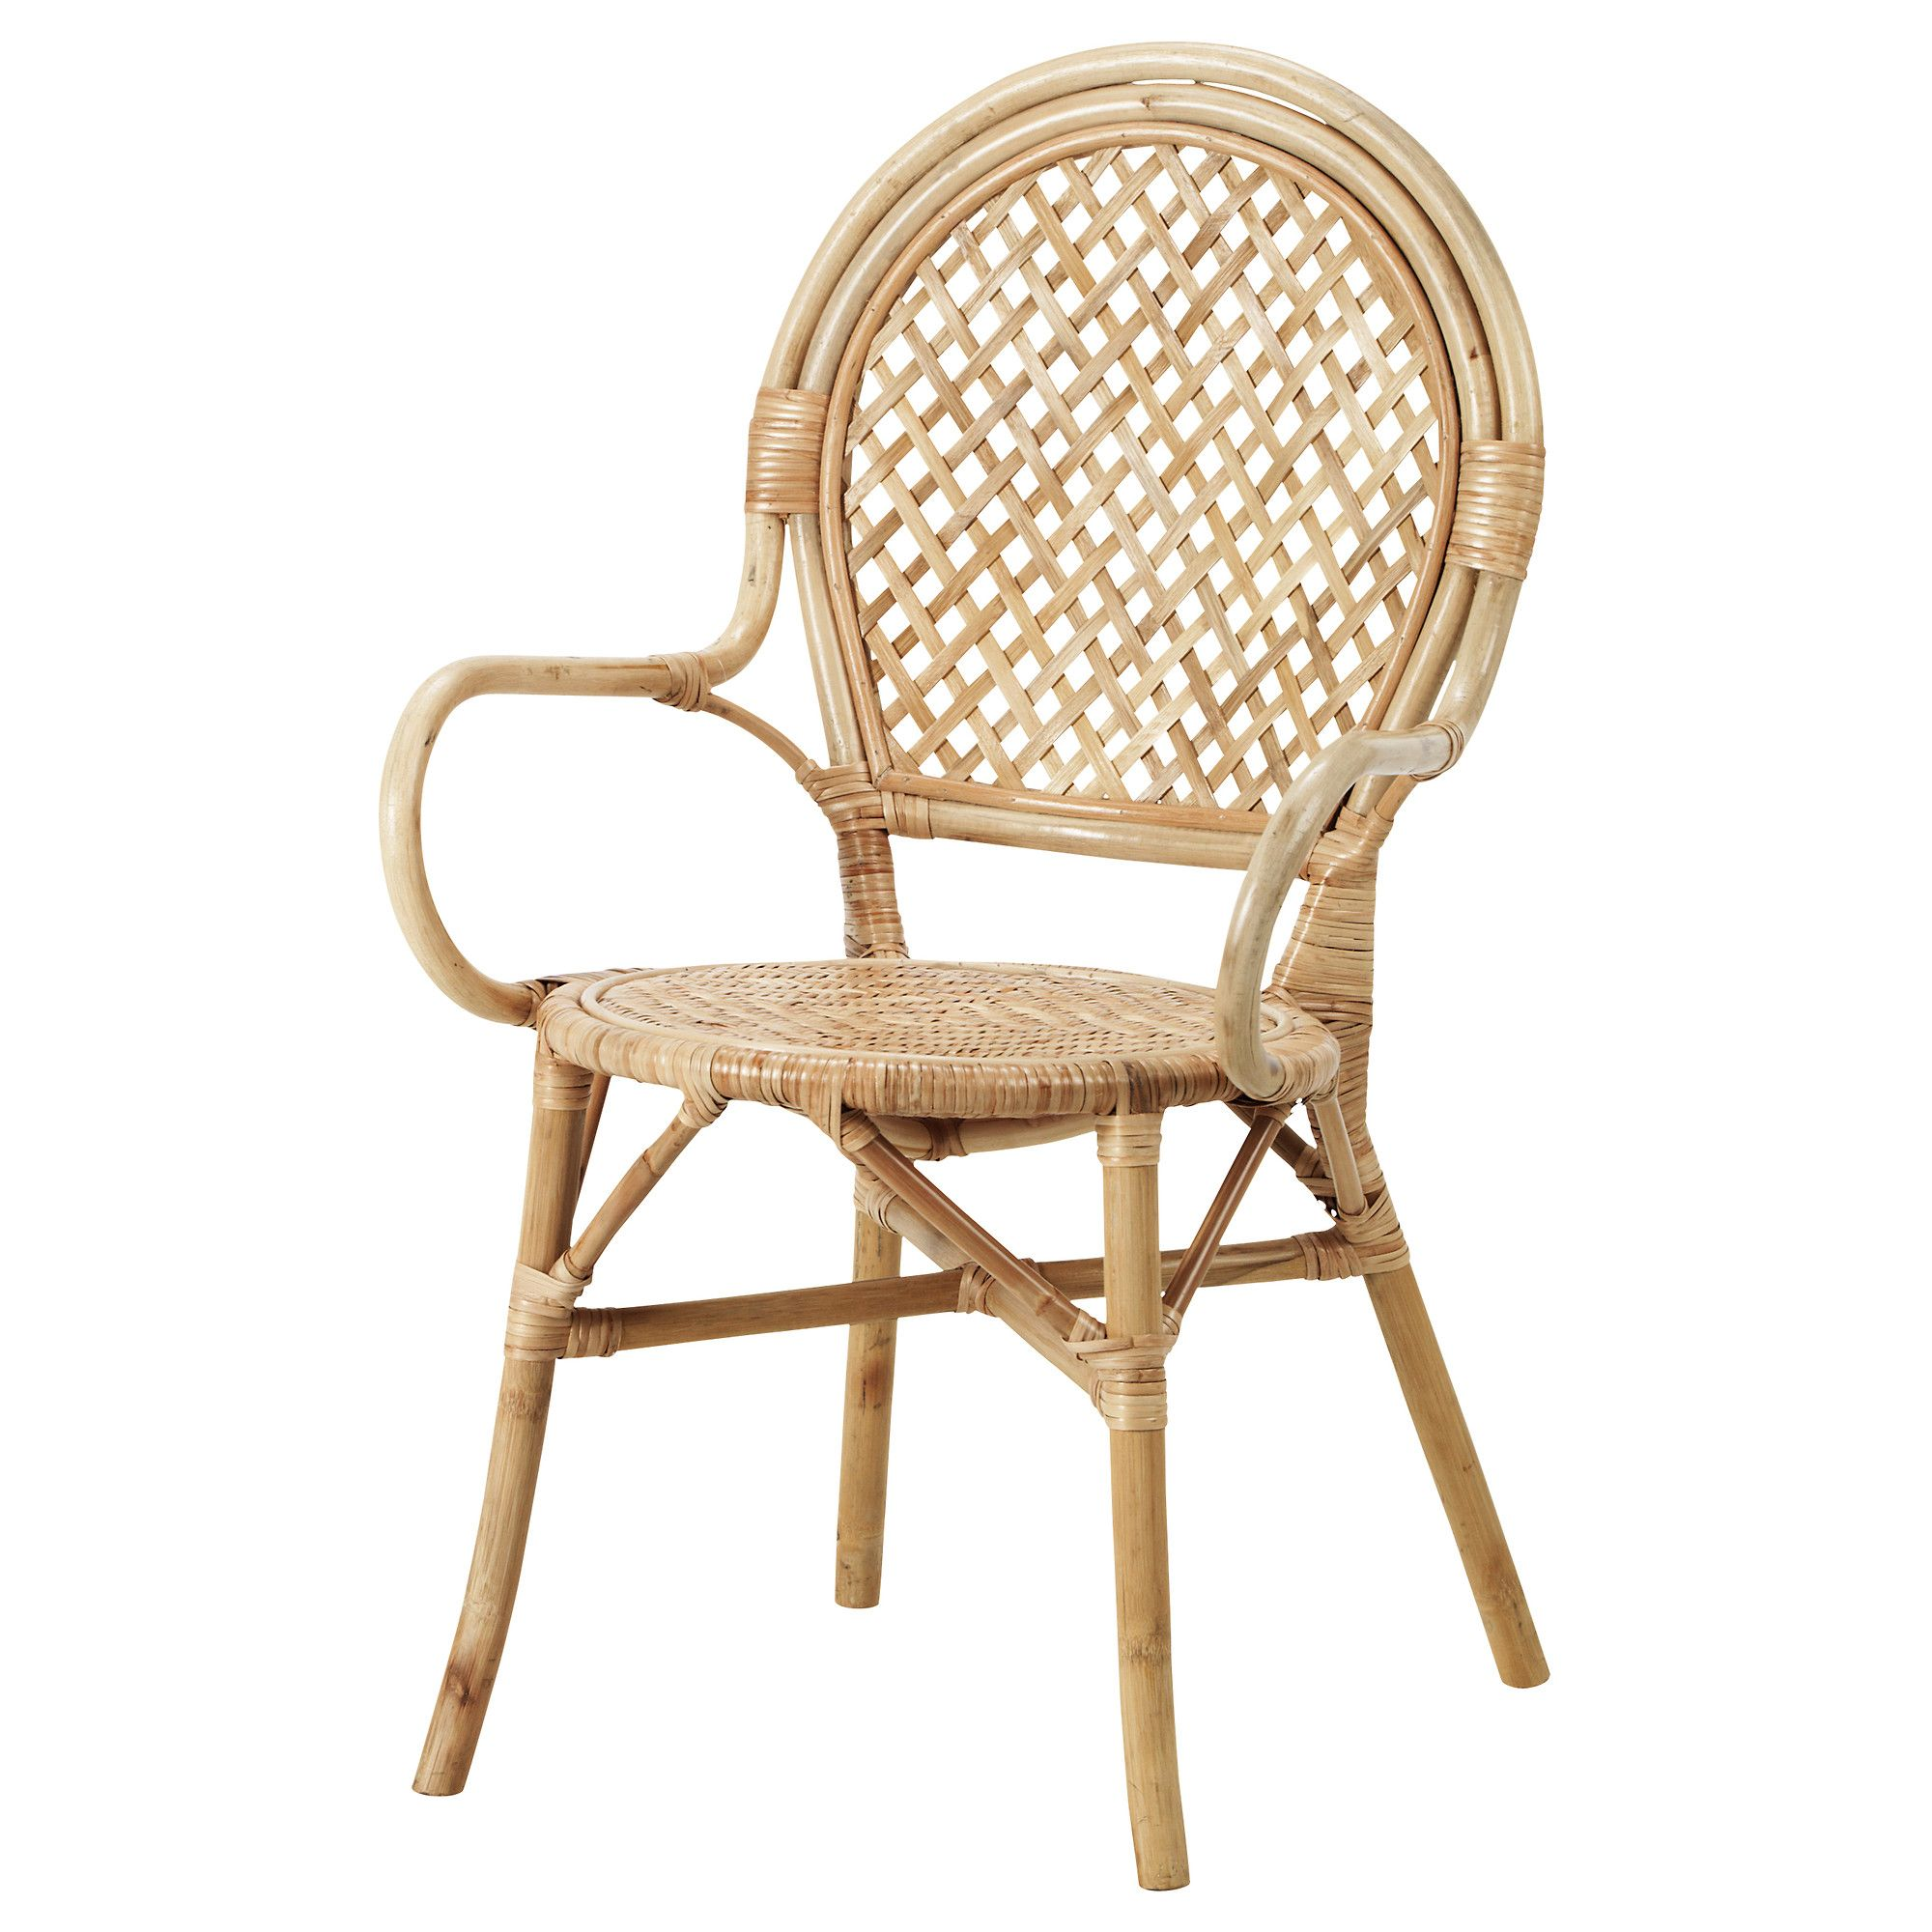 Rattan Ikea Us Furniture And Home Furnishings Nesting La Cocina In